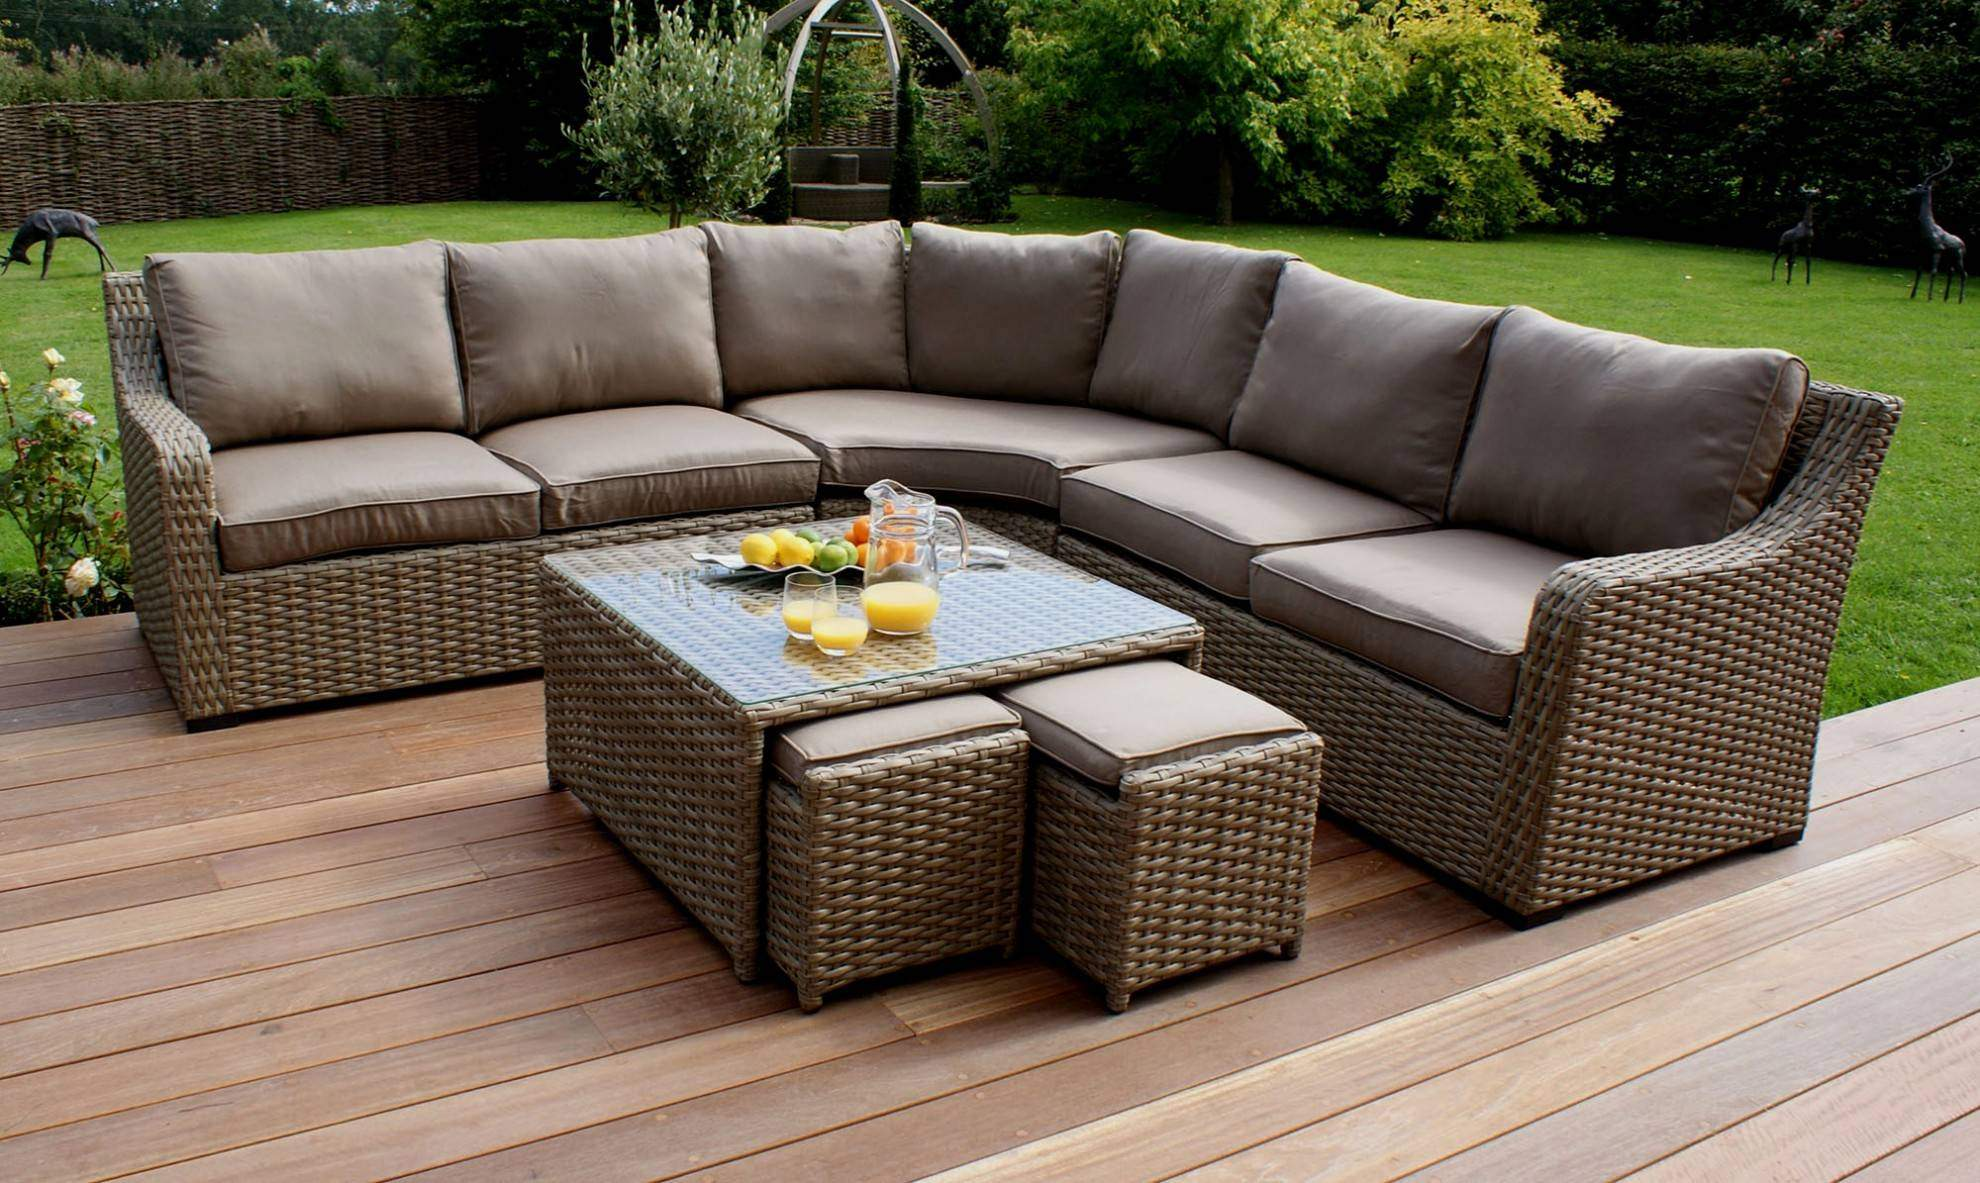 wohnzimmer mobel design unique flower sofa elegant wicker outdoor sofa 0d patio chairs sale of wohnzimmer mobel design